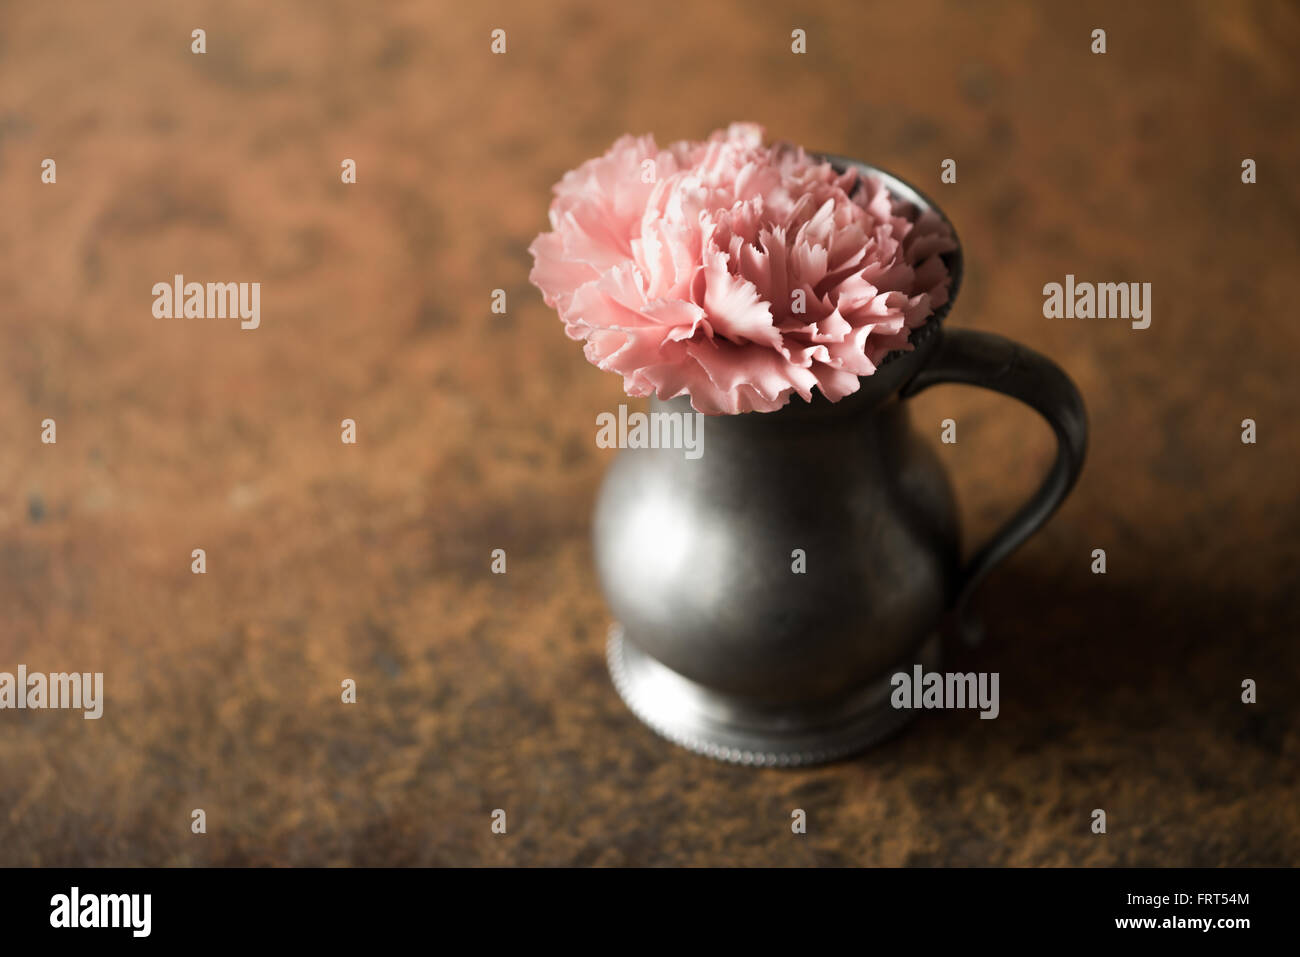 Carnation in the metal vase on the stone table  horizontal - Stock Image